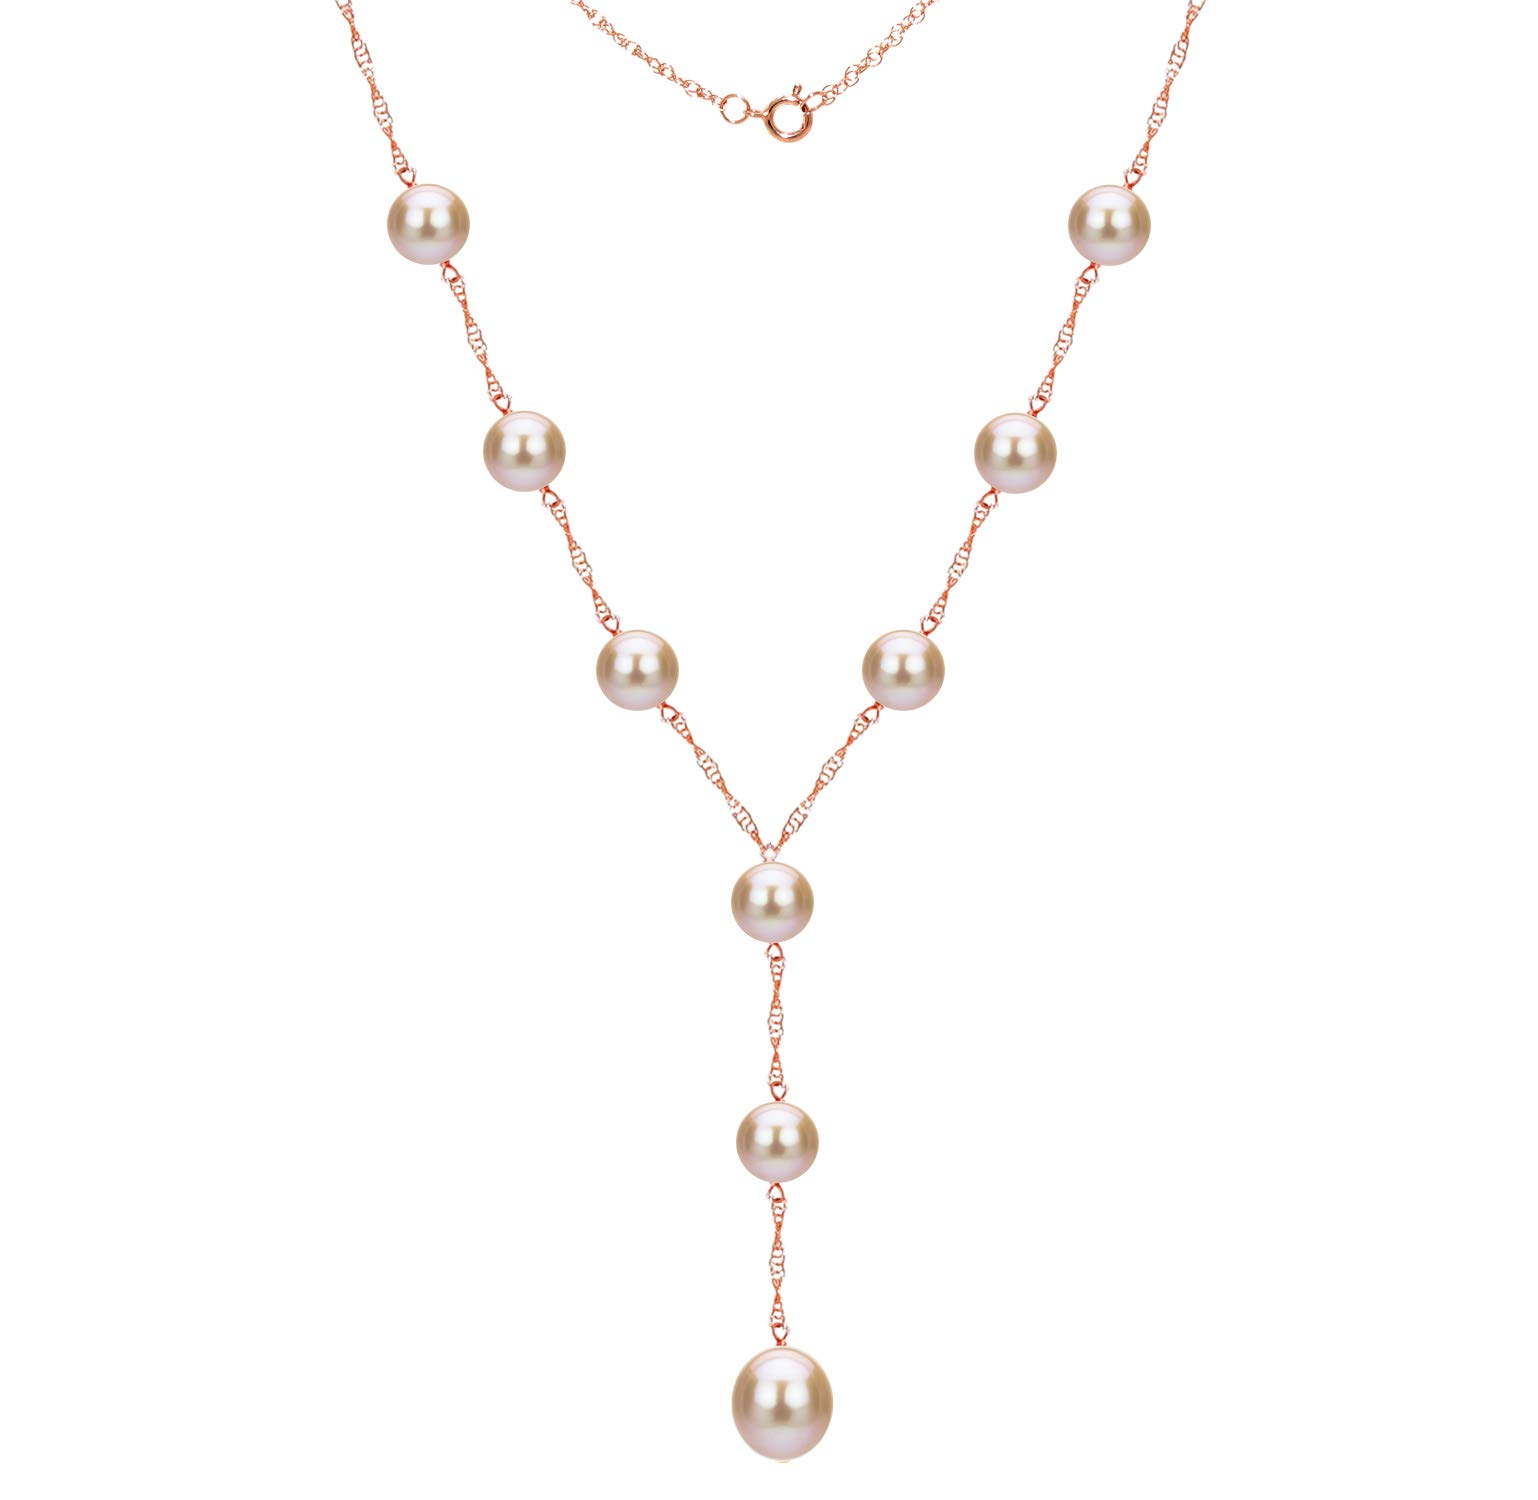 14k Rose Gold 8-8.5mm and 9-9.5mm Pink Freshwater Cultured Pearl Station Necklace, 18'' + 2'' Drop by La Regis Jewelry